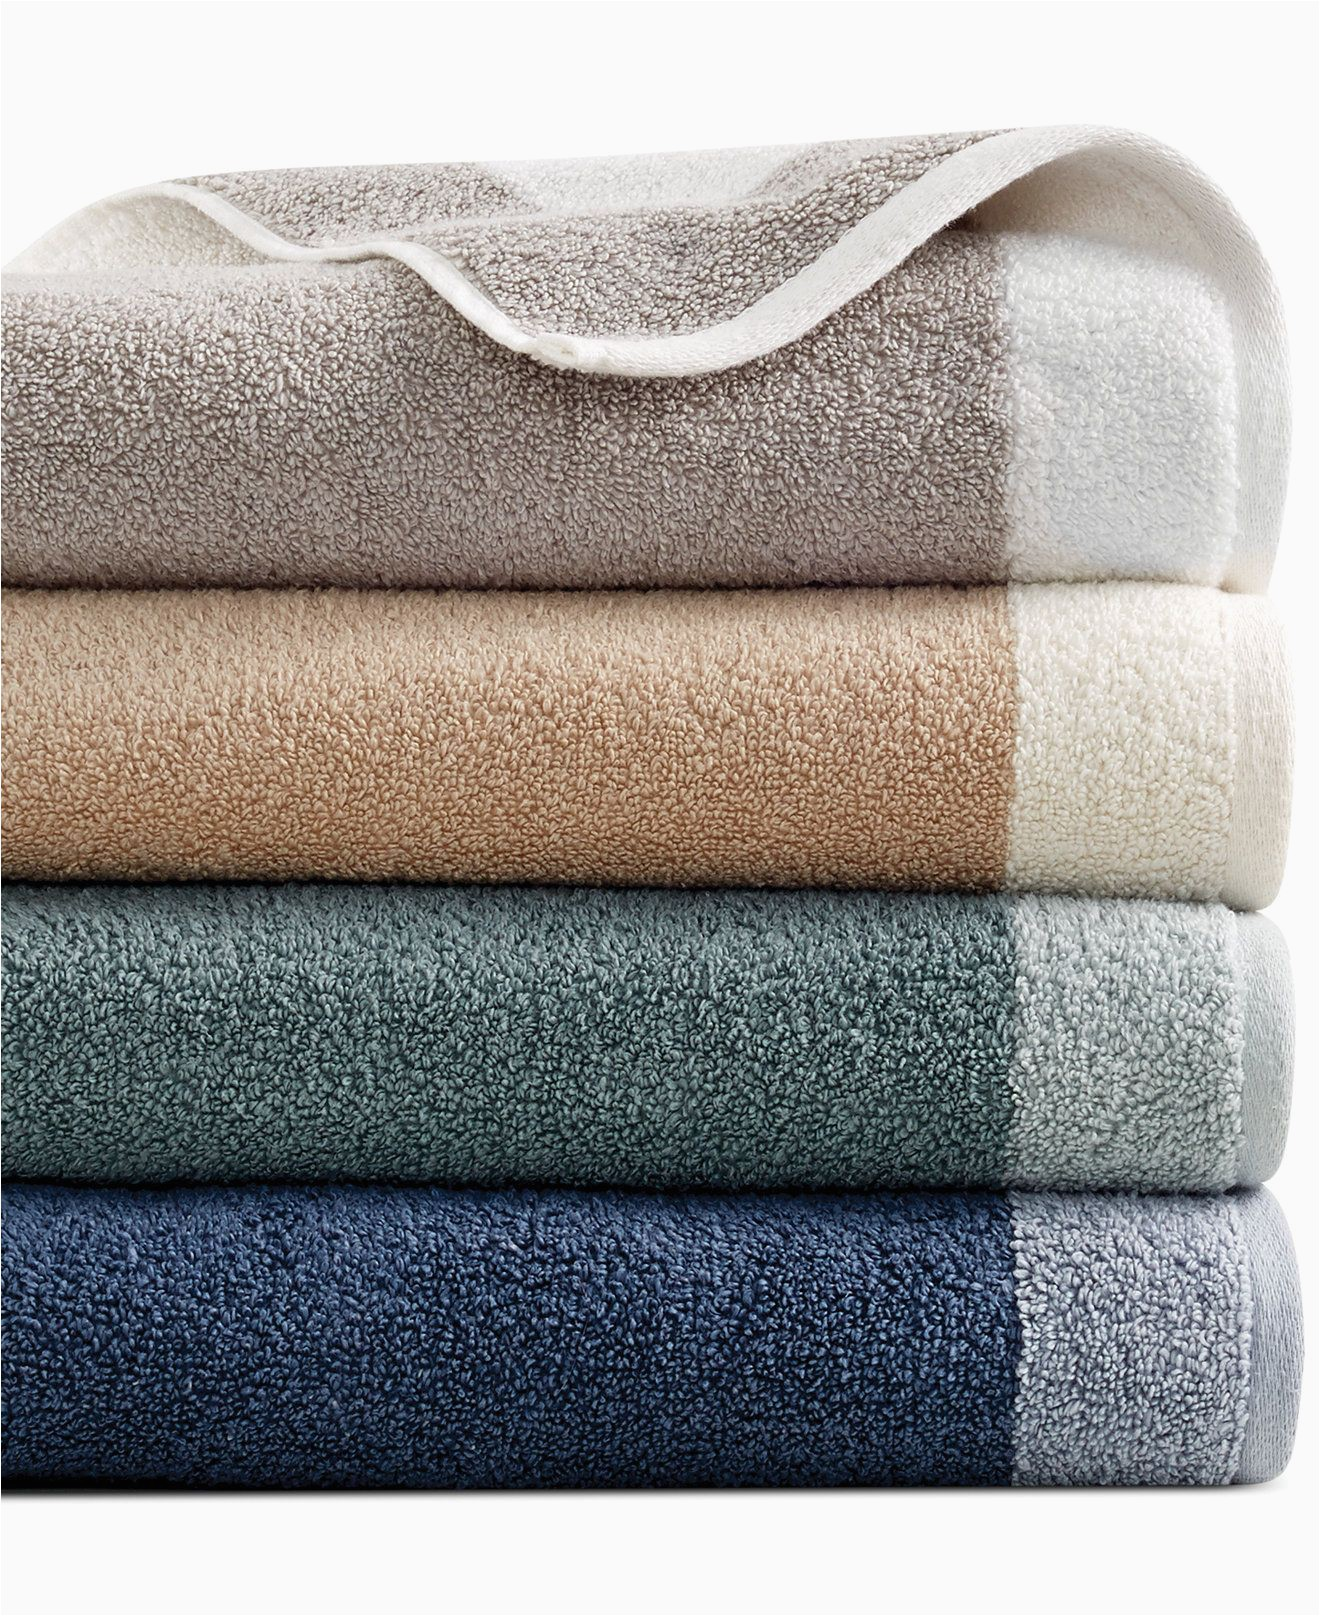 Wamsutta Perfect soft Micro Cotton Bath Rug Hotel Collection Reversible Bath towel Collection Bath